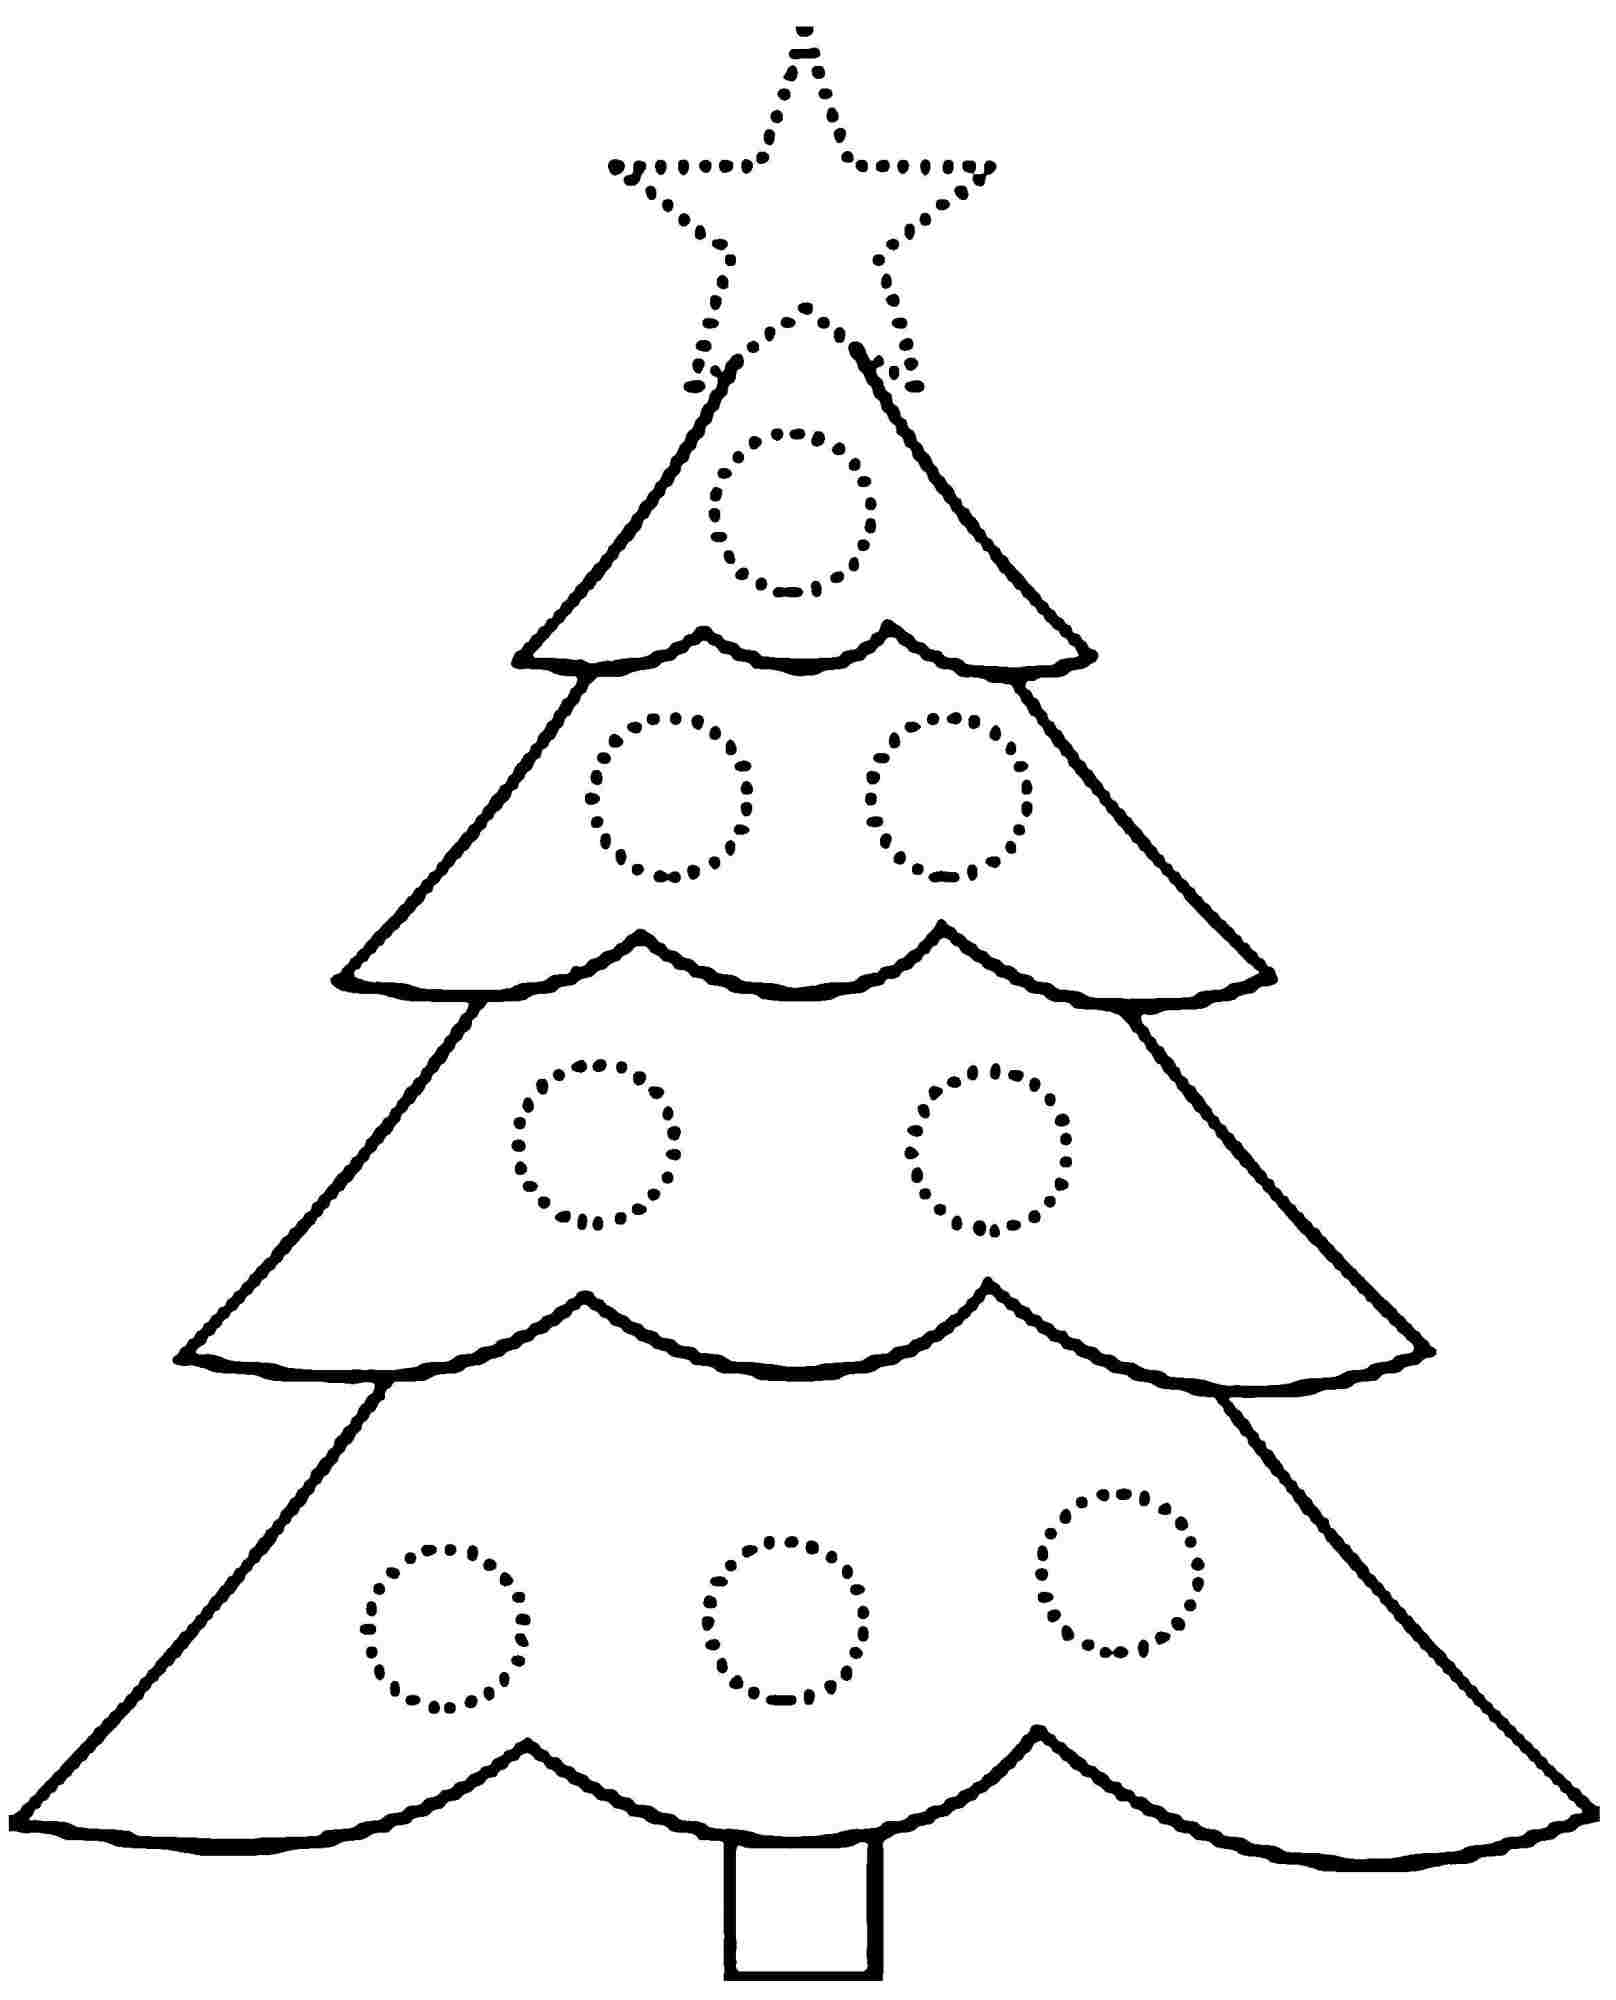 Free Printable Princess Coloring Pages - Free Printable Christmas Tree Coloring Pages